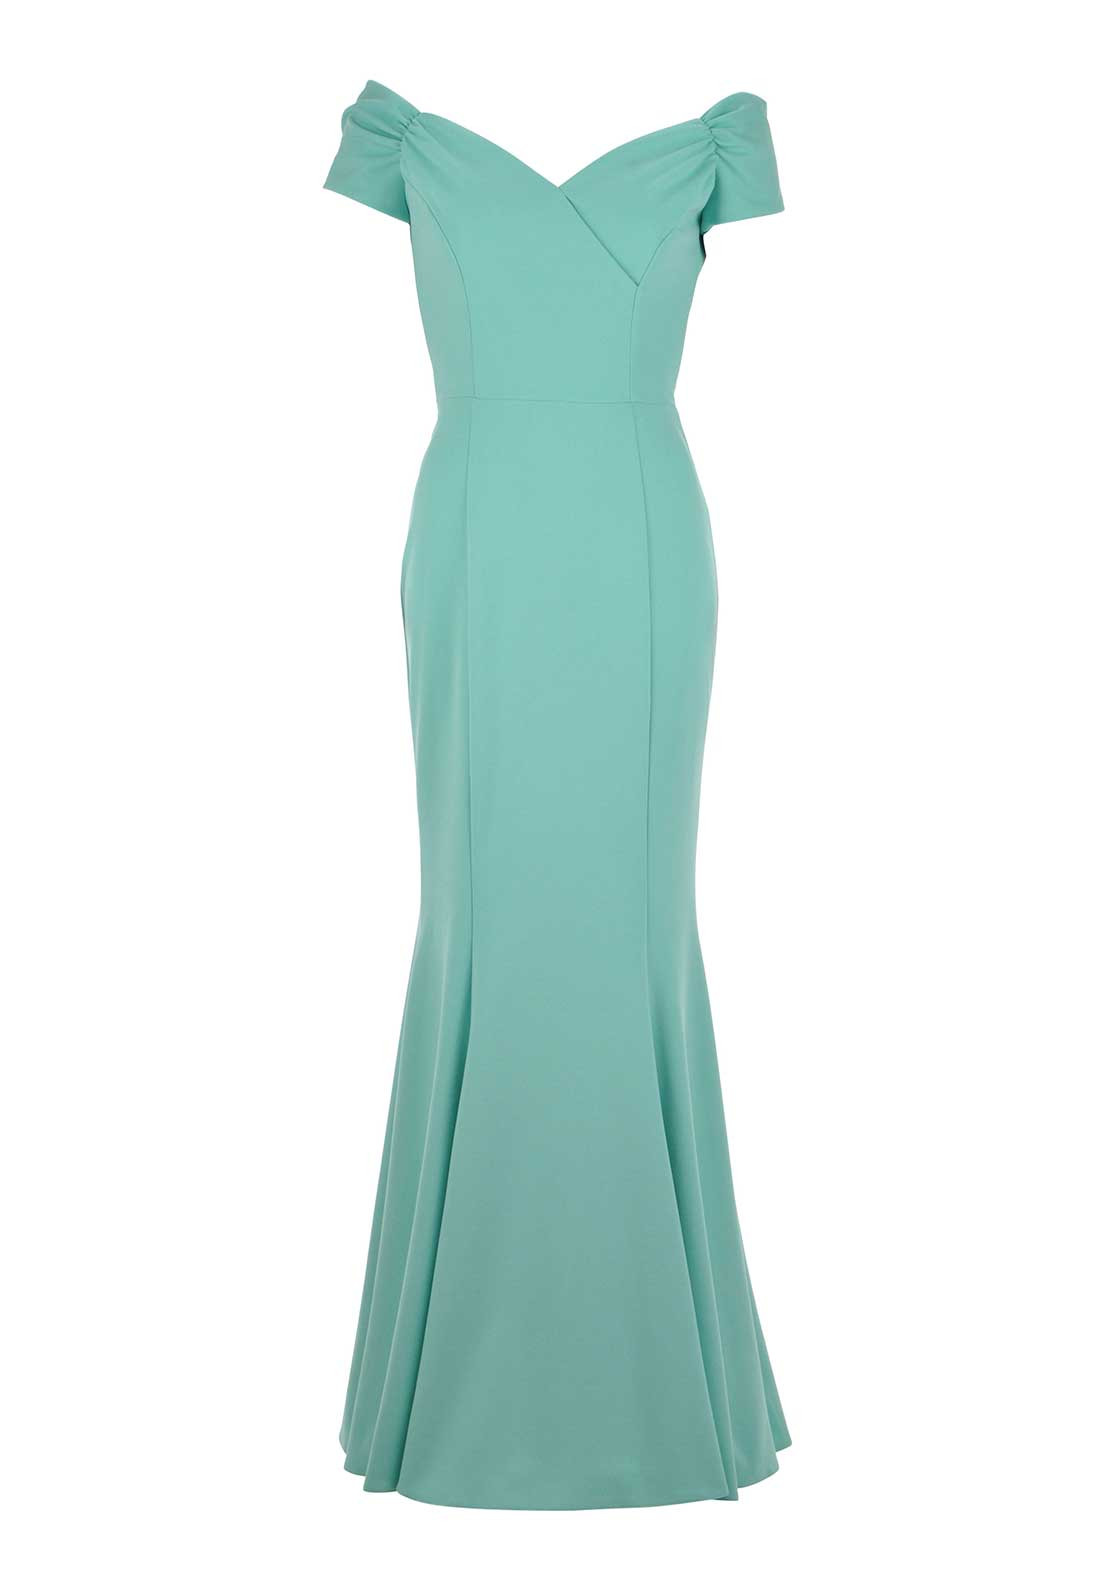 The Pretty Dress Company Fatale Bardot Neck Long Dress, Mint